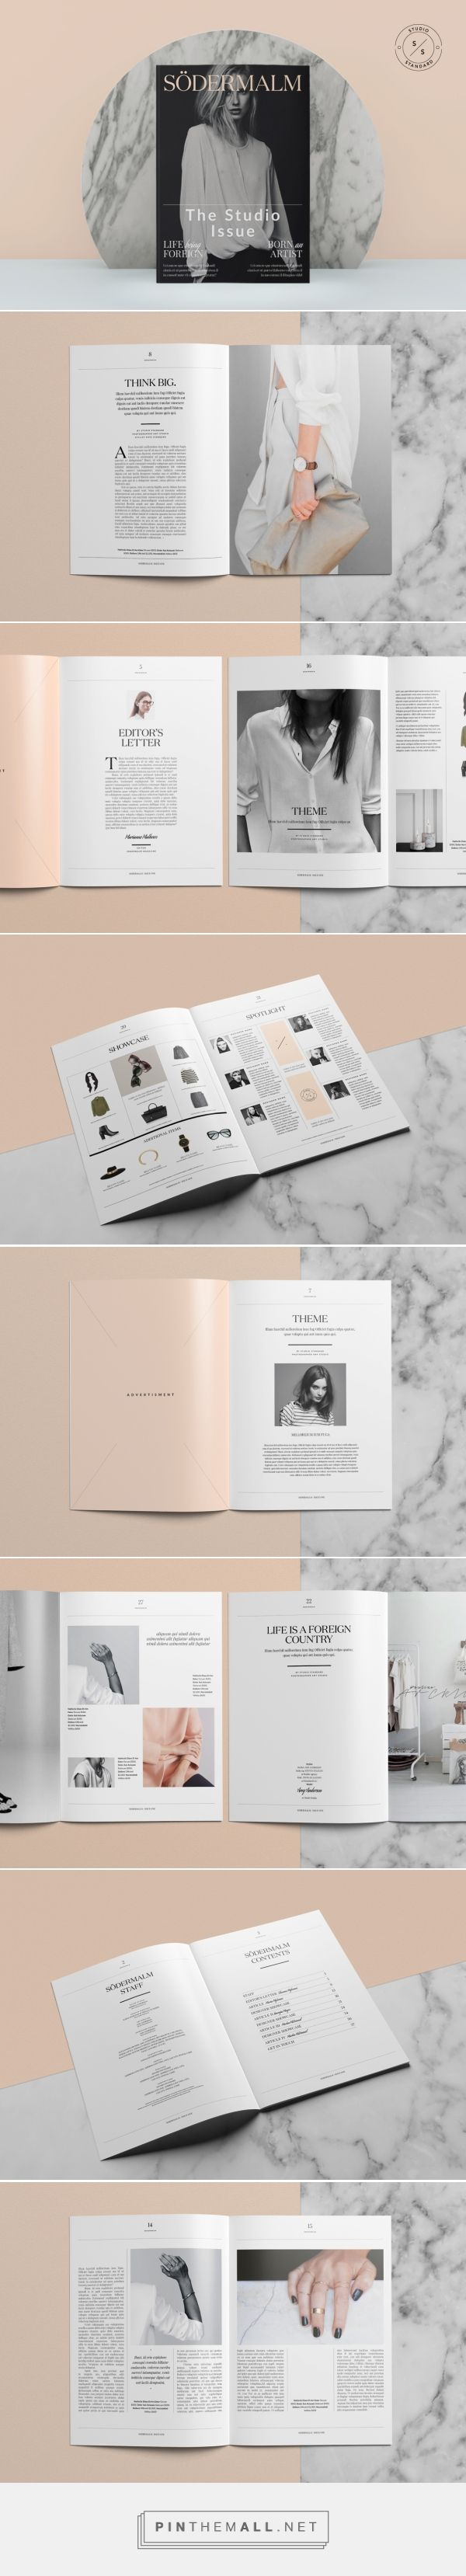 Södermalm Magazine Template on Behance - created via http://pinthemall.net